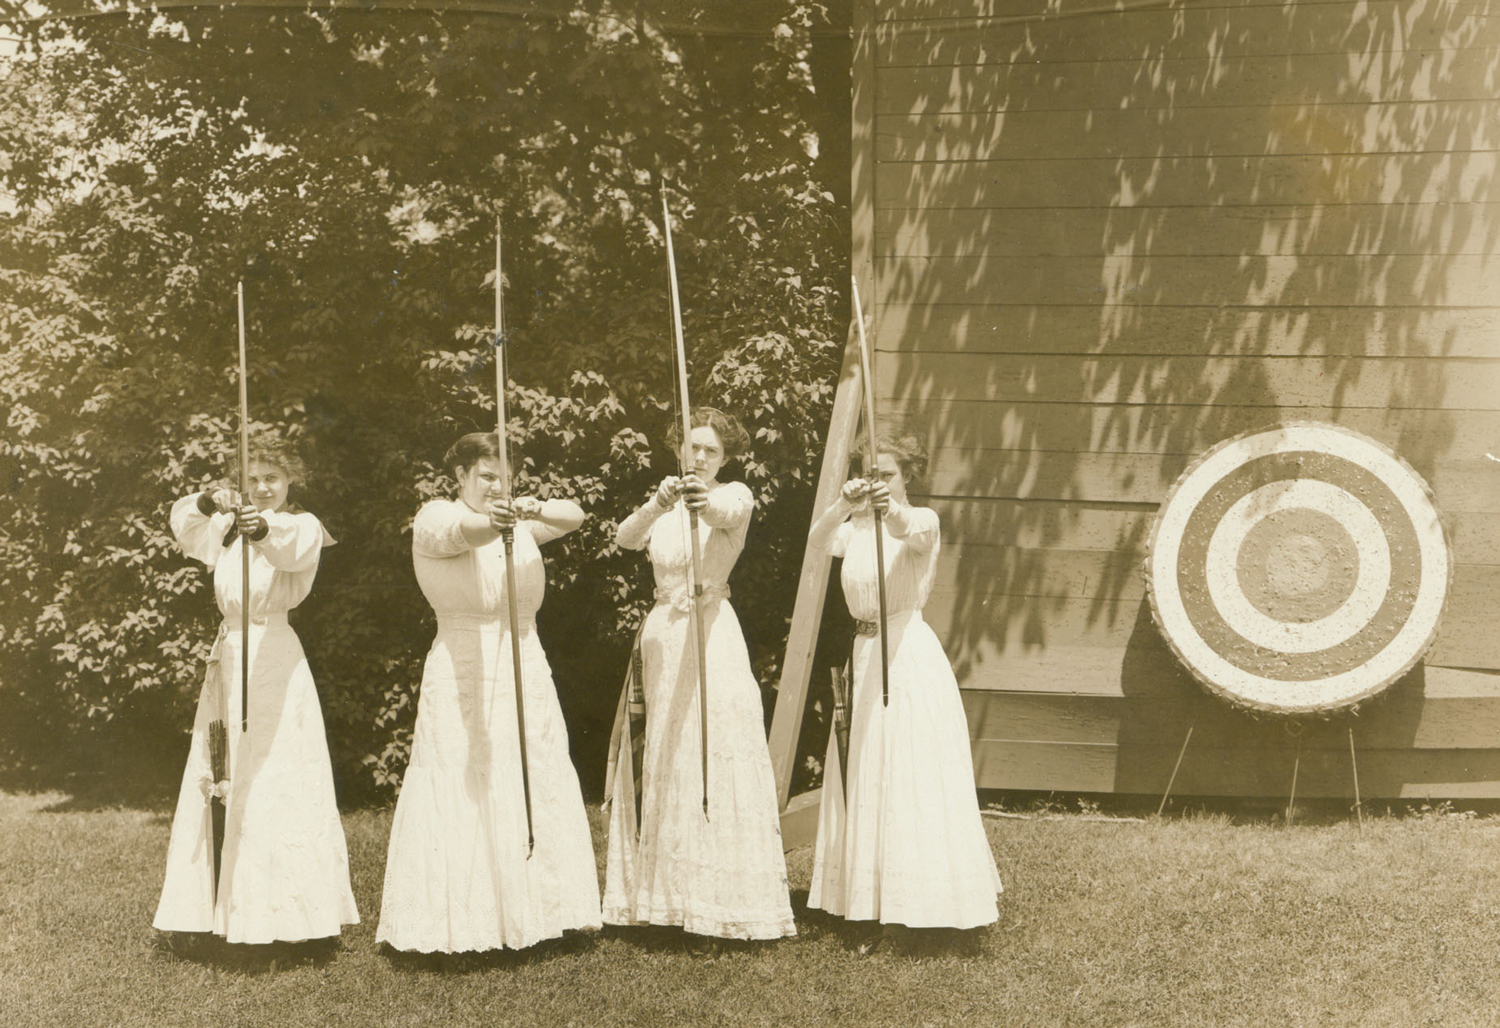 Vintage Archery photo from Saint Mary